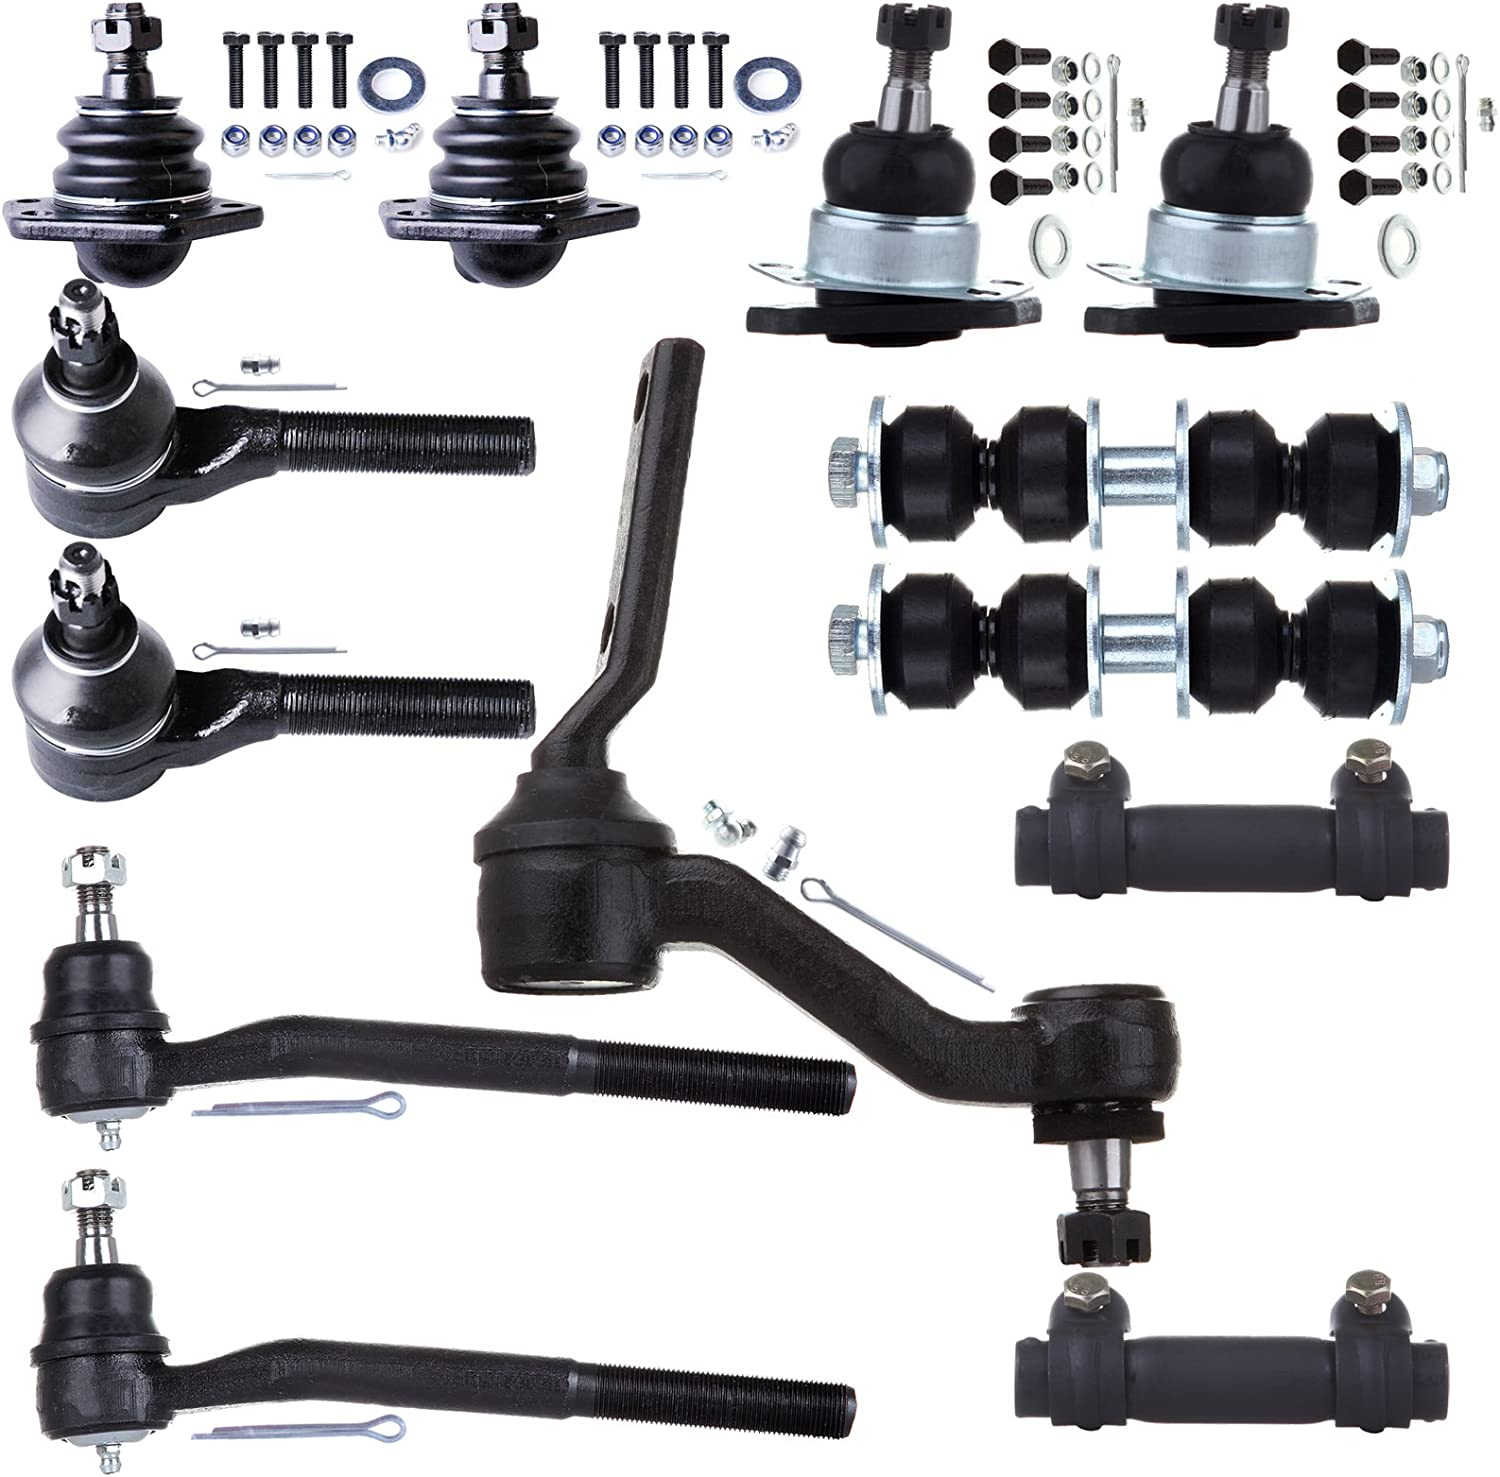 ECCPP Front Ball Joint Tie Rods Sway Bar Link Idler Arm Complete Kit for 1998-2005 Chevrolet Blazer 4WD 13Pcs